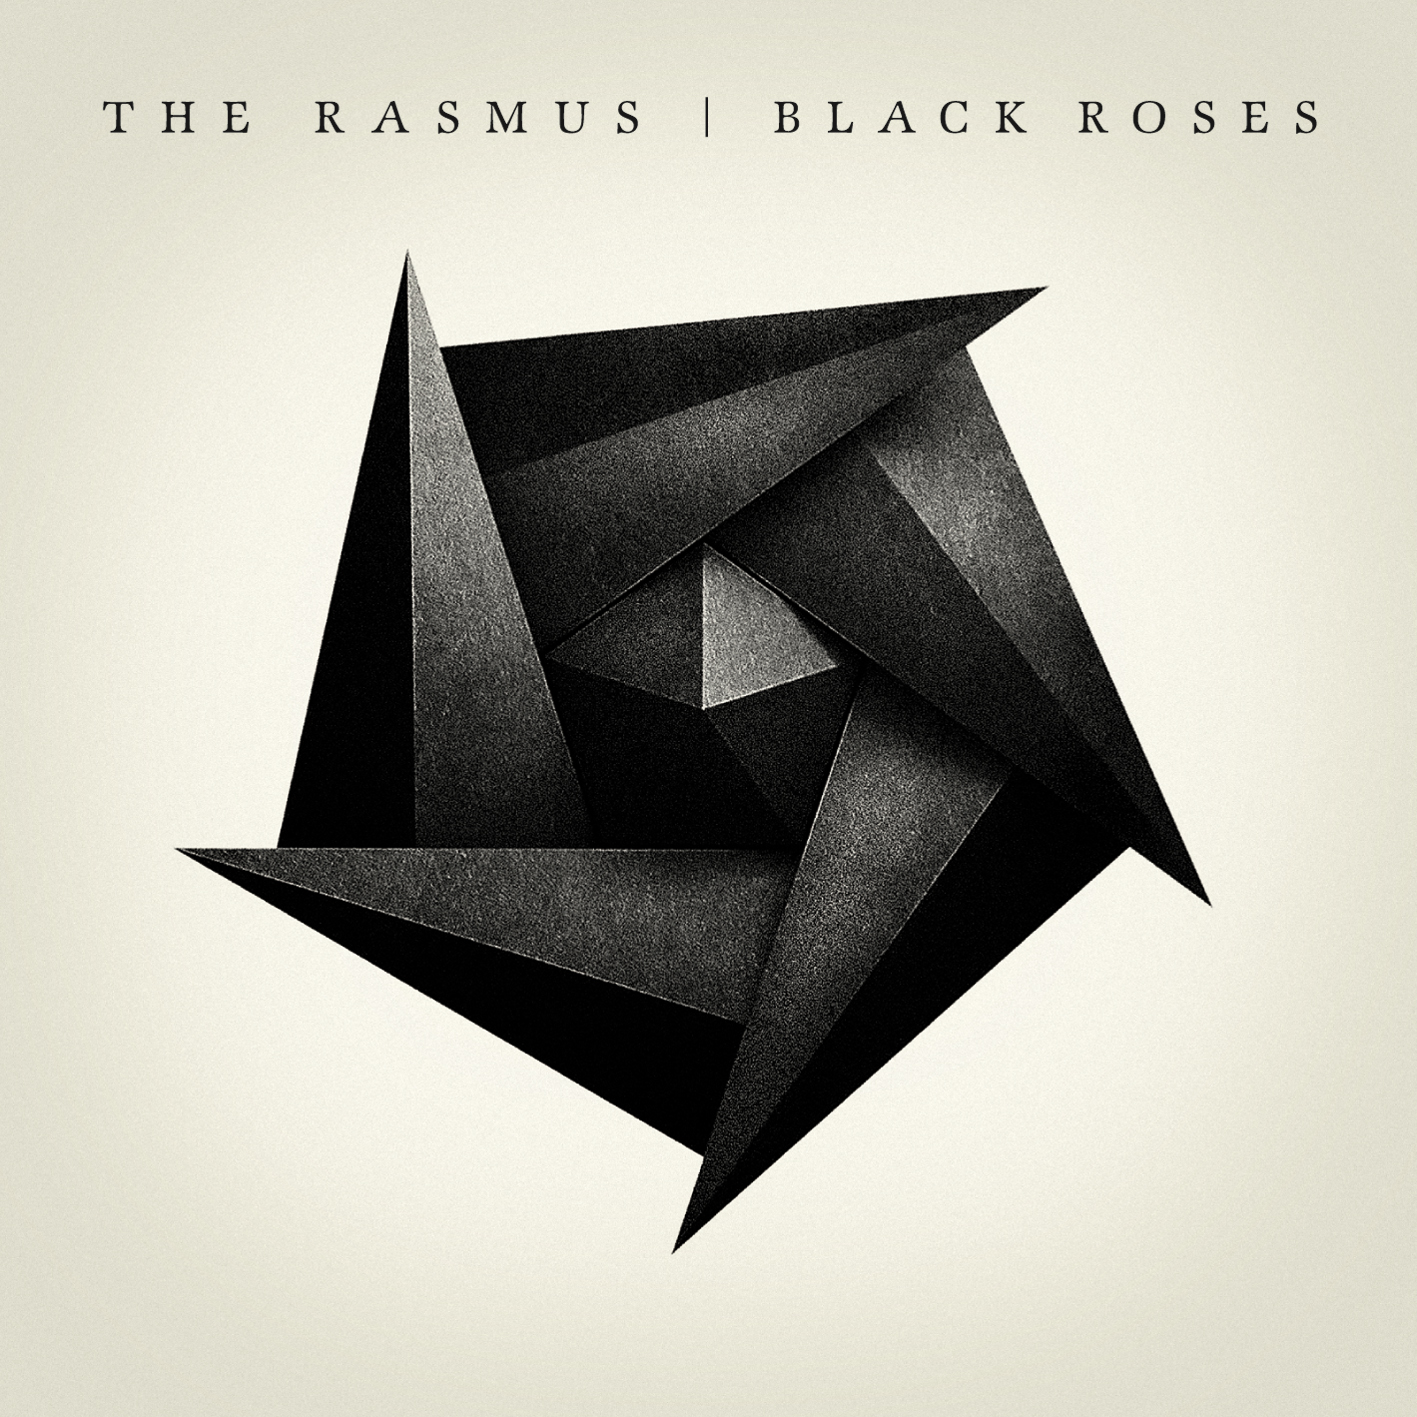 The Rasmus: Black Roses (2008) Book Cover